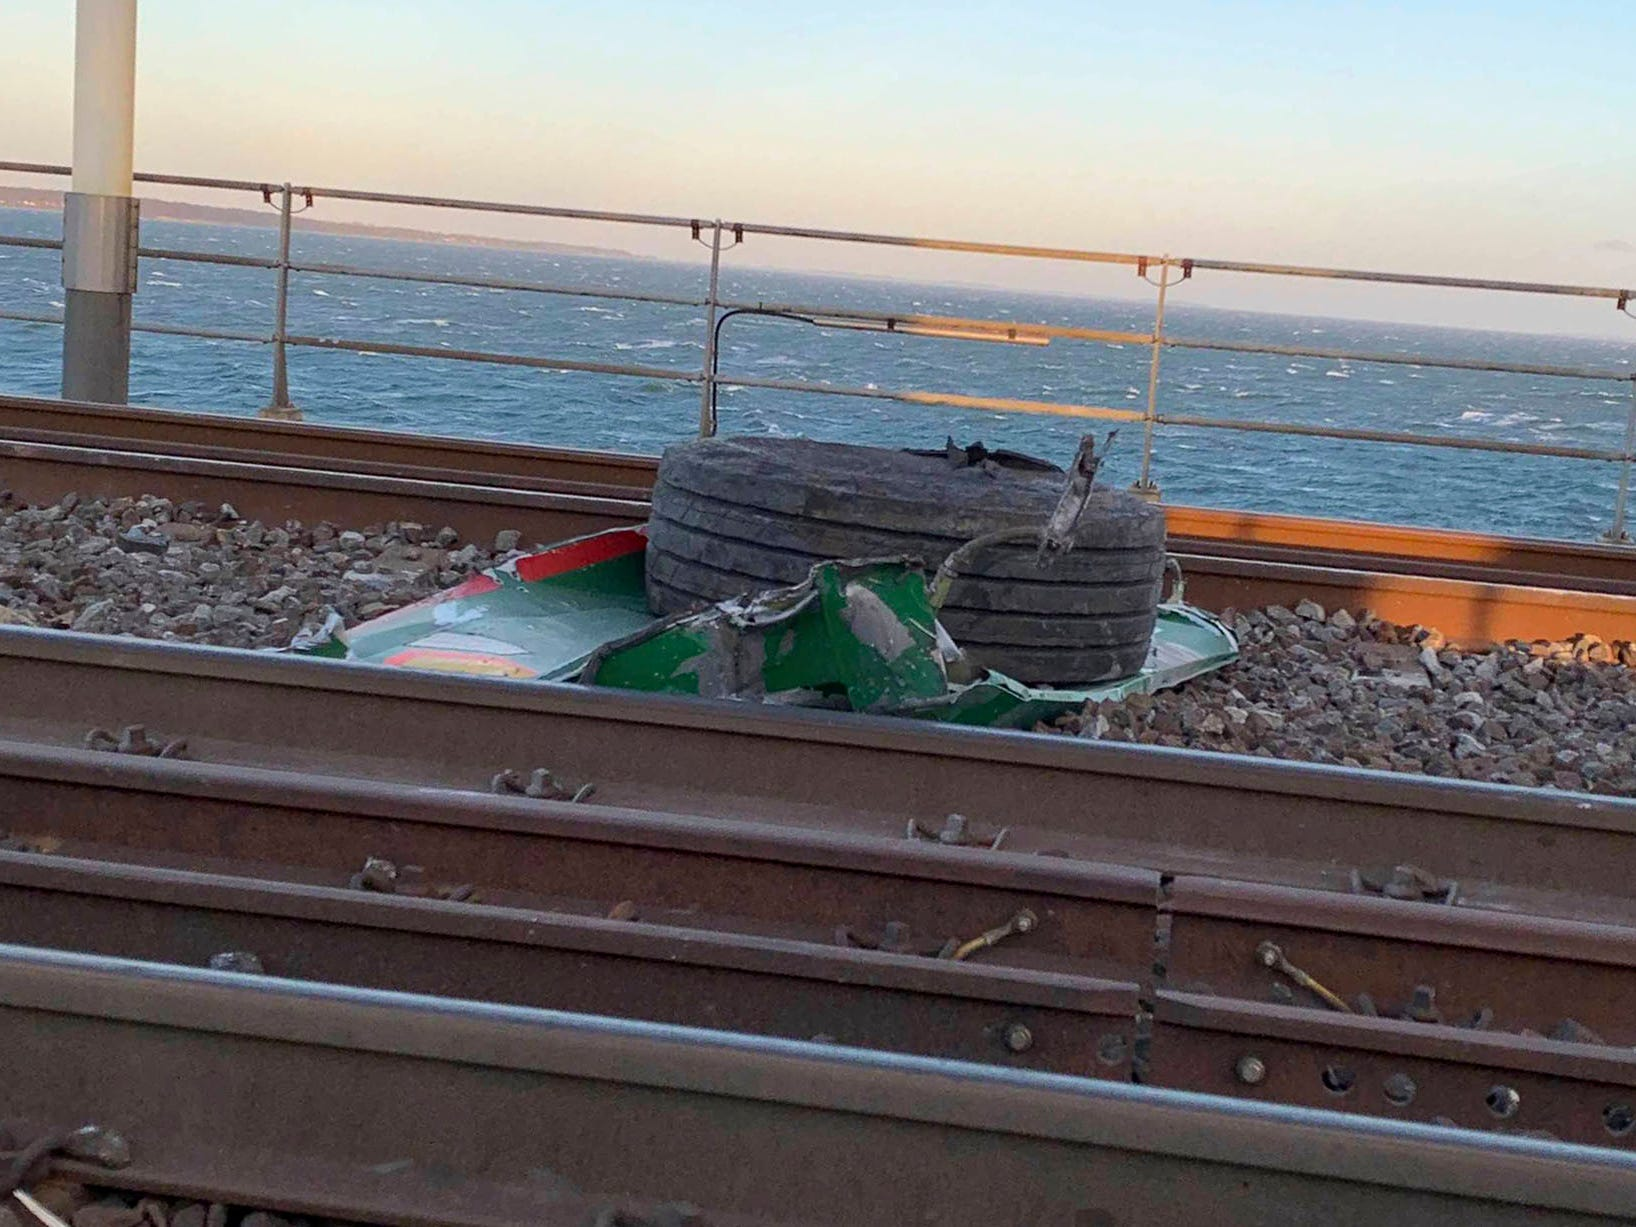 "In this UGC photo made available by a source wishing to remain anonymous, a view of debris on the tracks after a train accident on the Great Belt Bridge, in Nyborg, Denmark, Wednesday, Jan. 2, 2019. At least six people were killed in a train accident early Wednesday on a Danish bridge linking the central islands of Zealand and Funen, according to the rail operator. Authorities said several others were injured. Police spokesman Lars Braemhoej said that while ""we do not know precisely what caused the accident,"" one possible cause was that cargo from a passing freight train fell off and hit the passenger train. He added there was ""considerable damage"" on the passenger train.  (Anonymous Source via AP) ORG XMIT: AMB810"